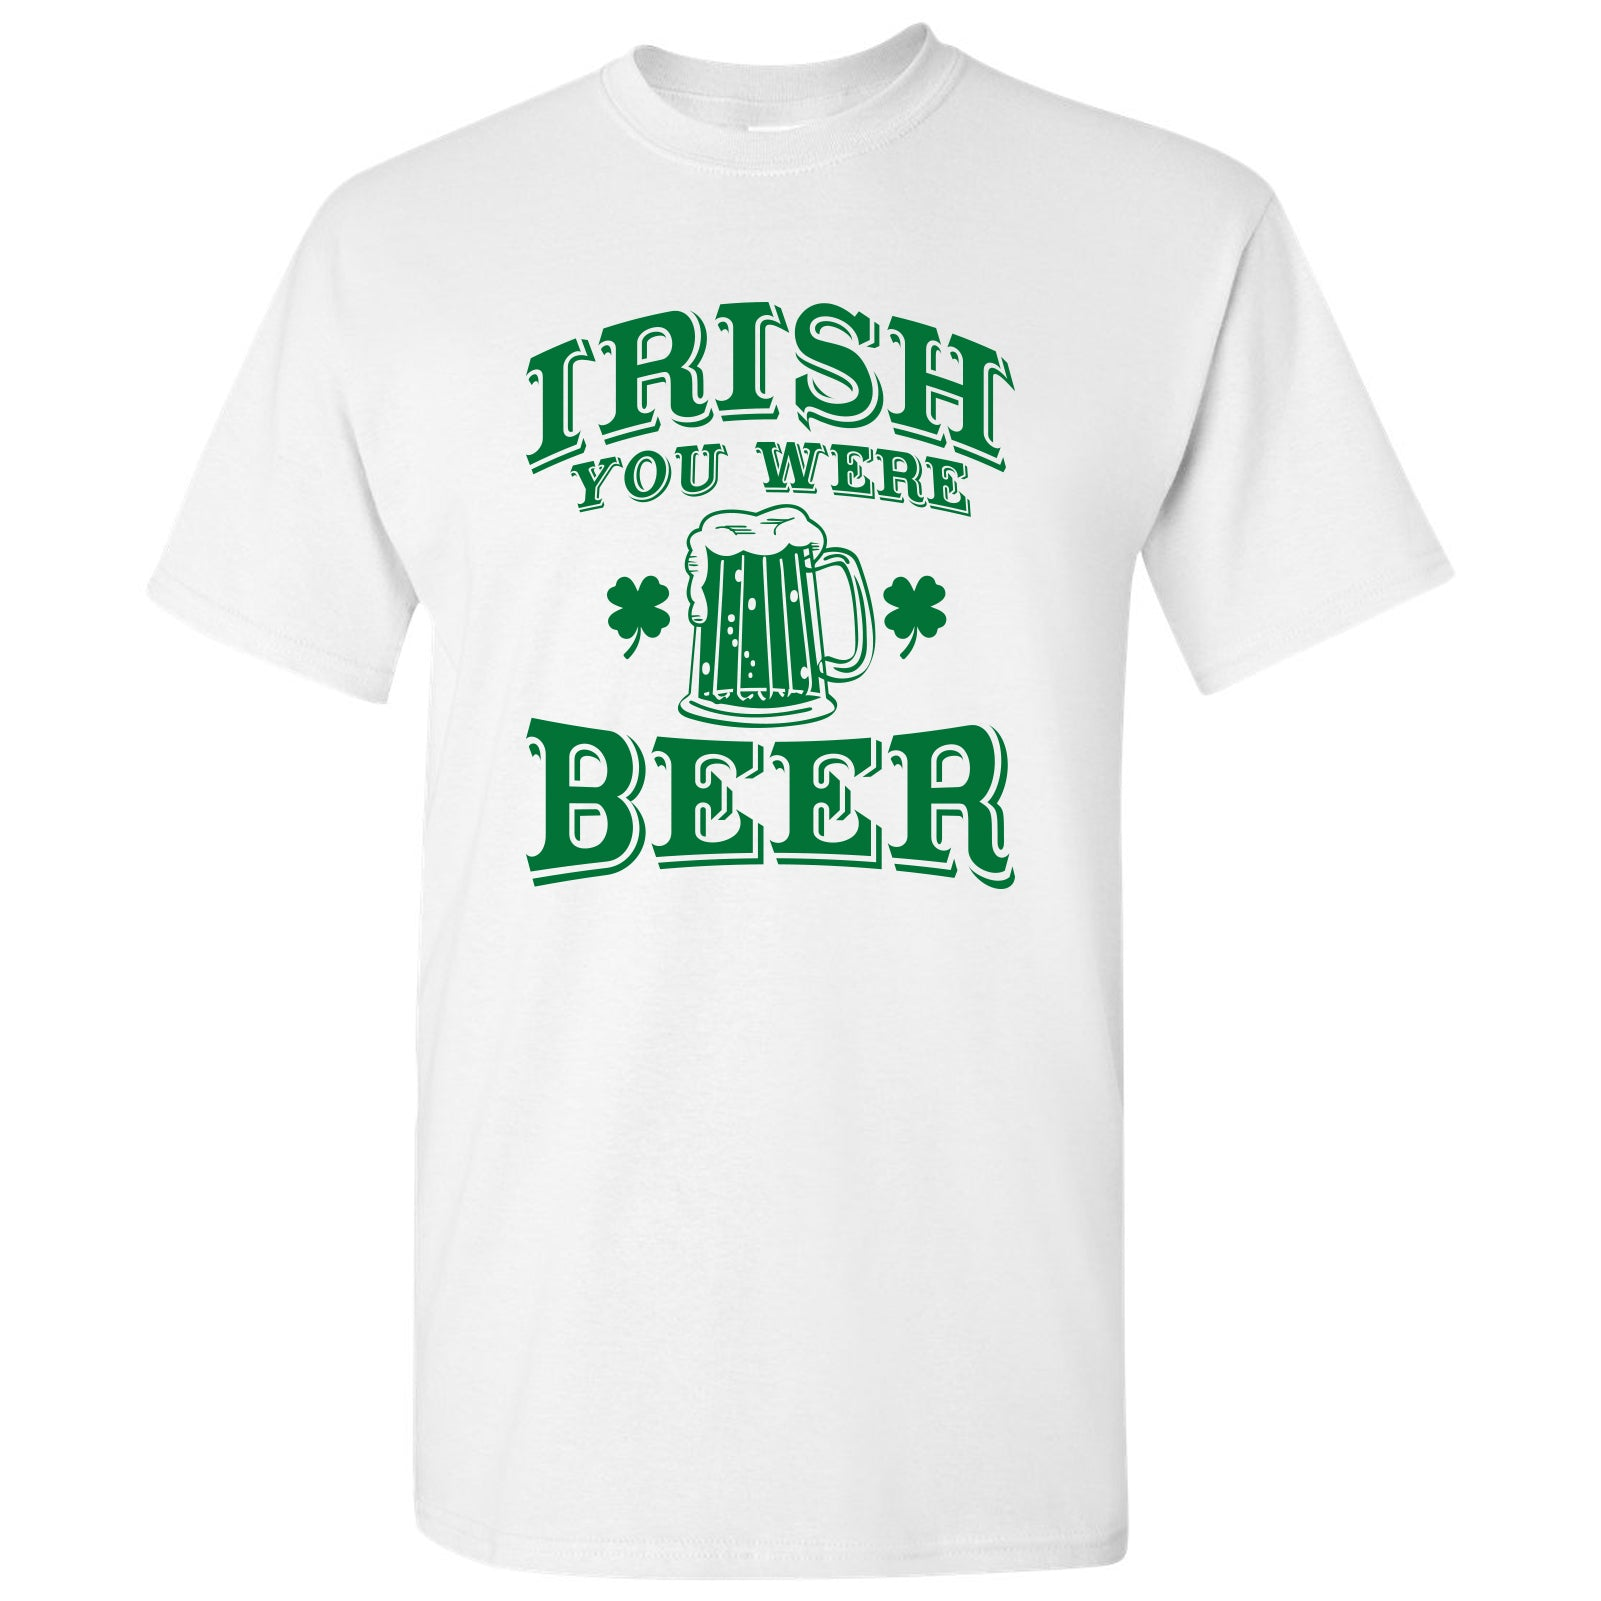 Details about  /Irish You Were Beer Men/'s White Shirt Hilarious Shirt Patrick/'s Day